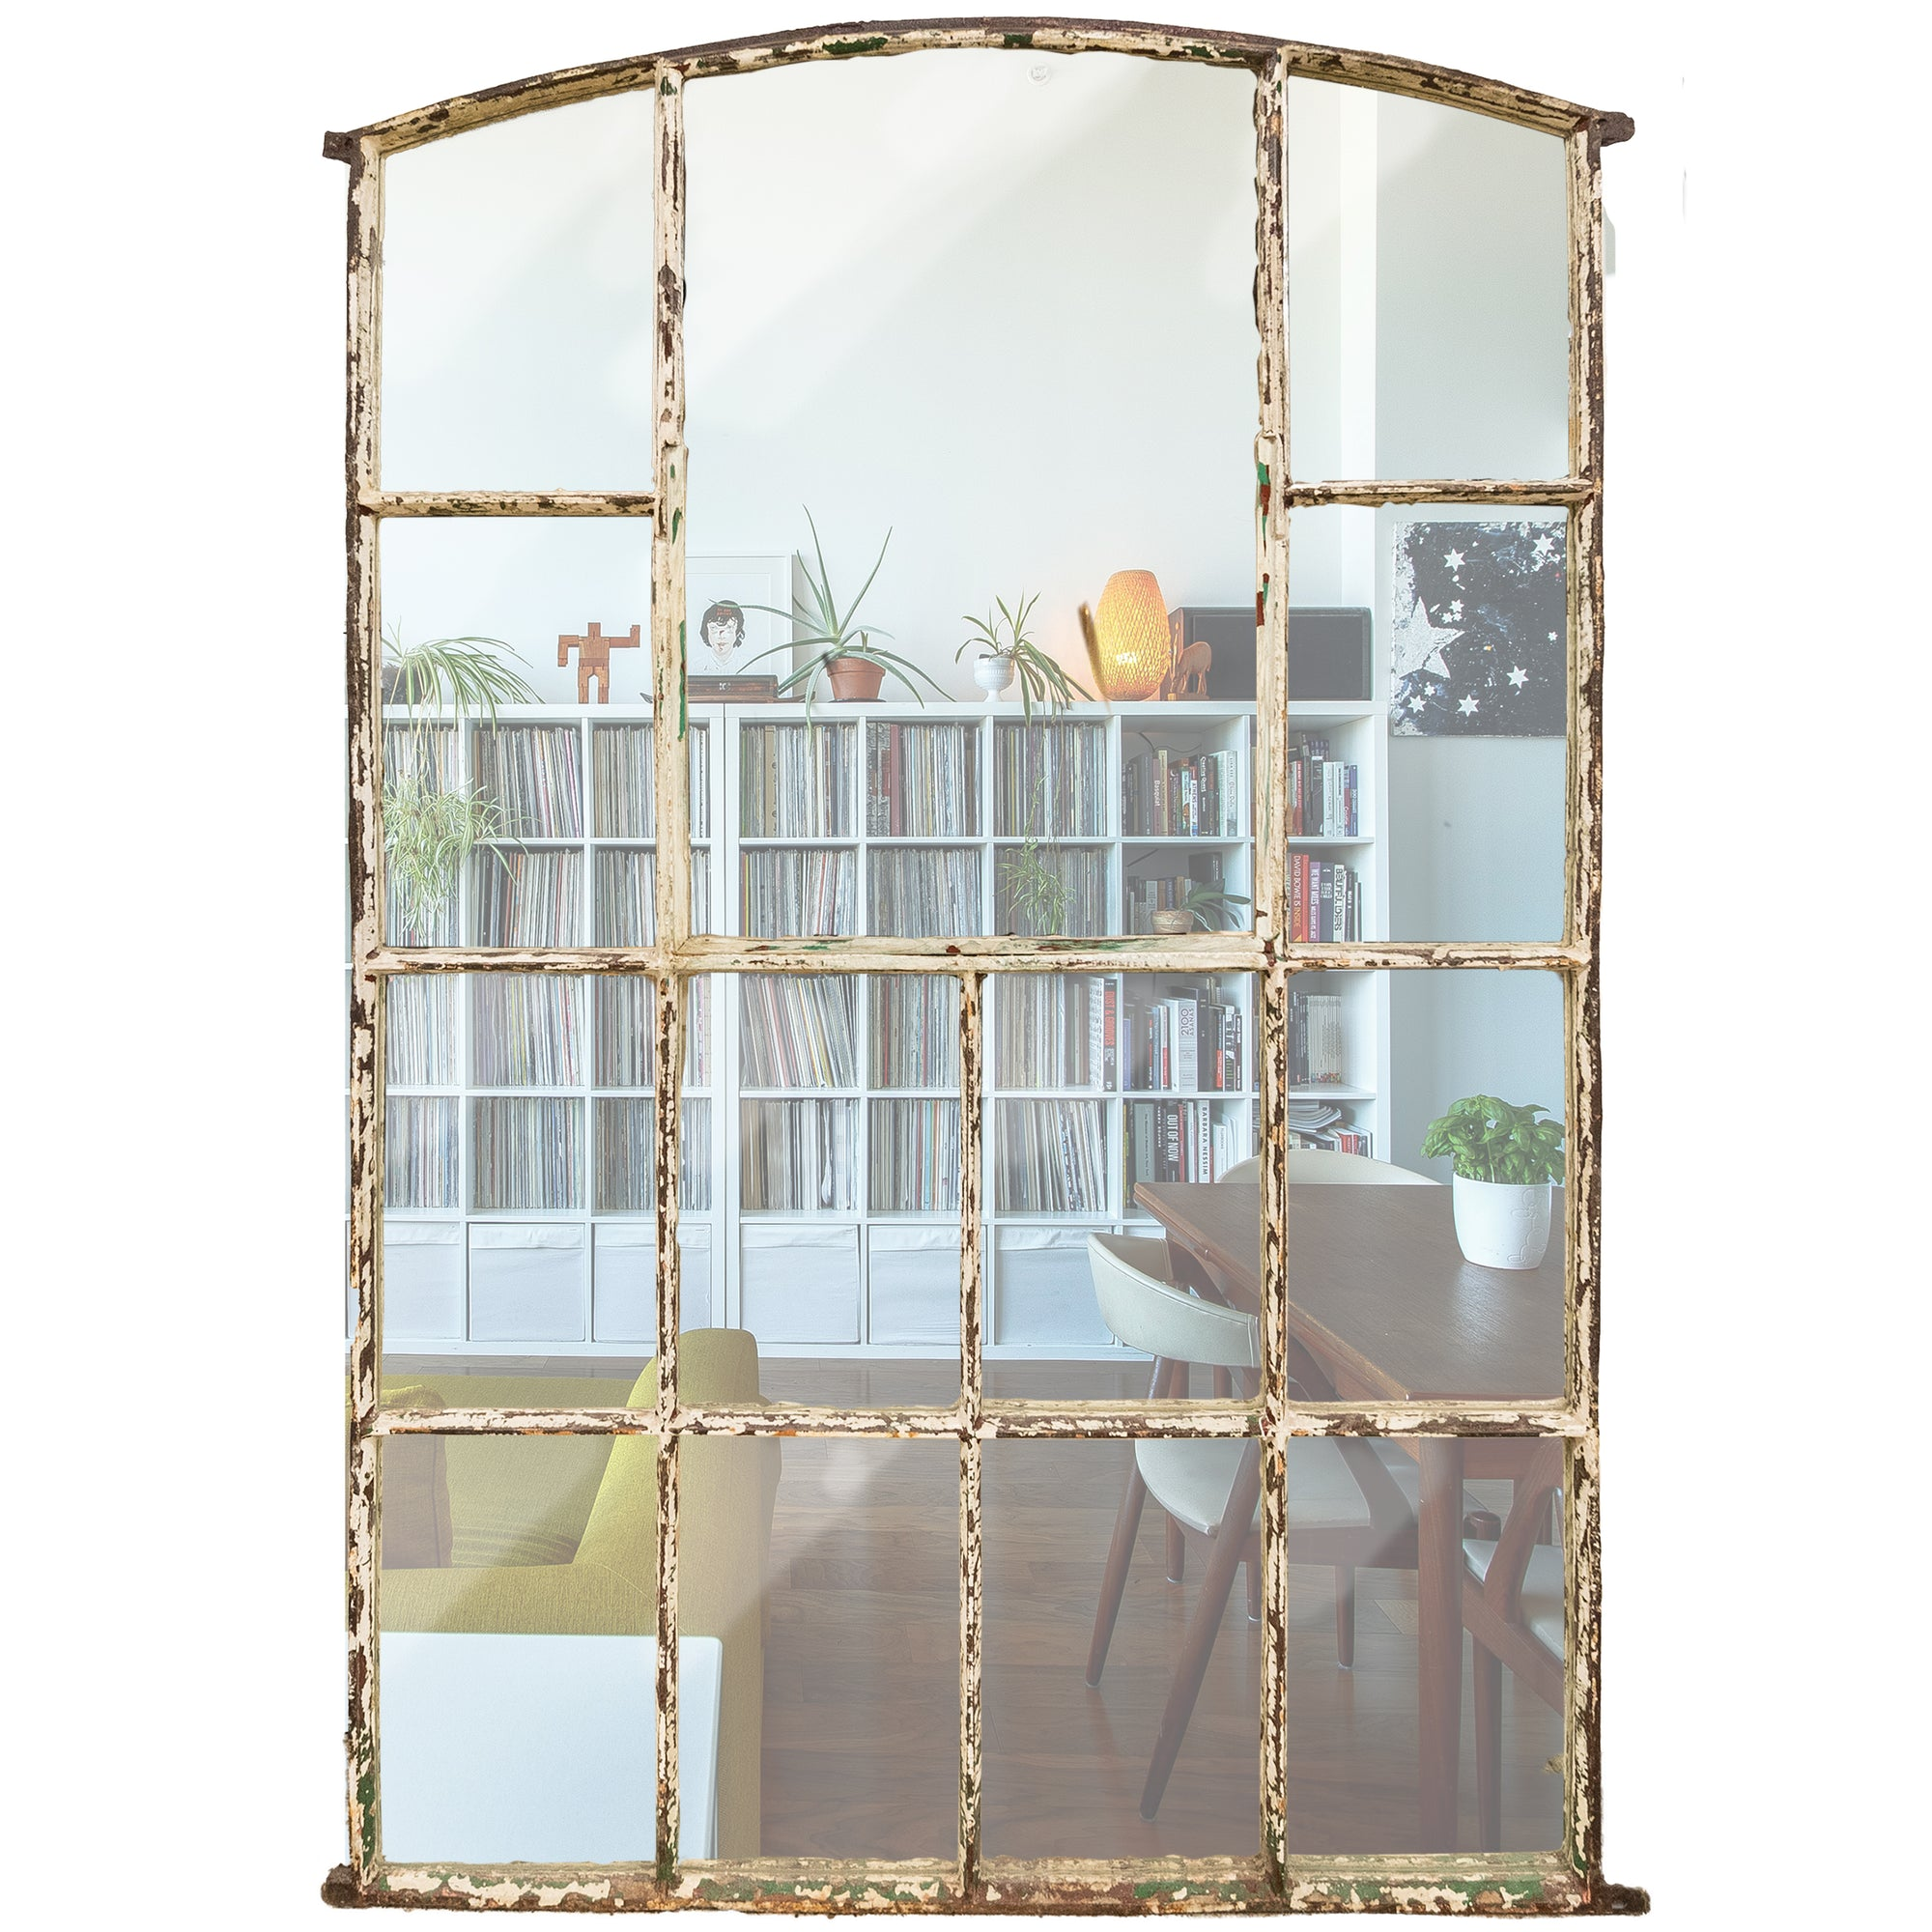 Antique Upcycled Victorian Warehouse Window Mirror - The Architectural Forum